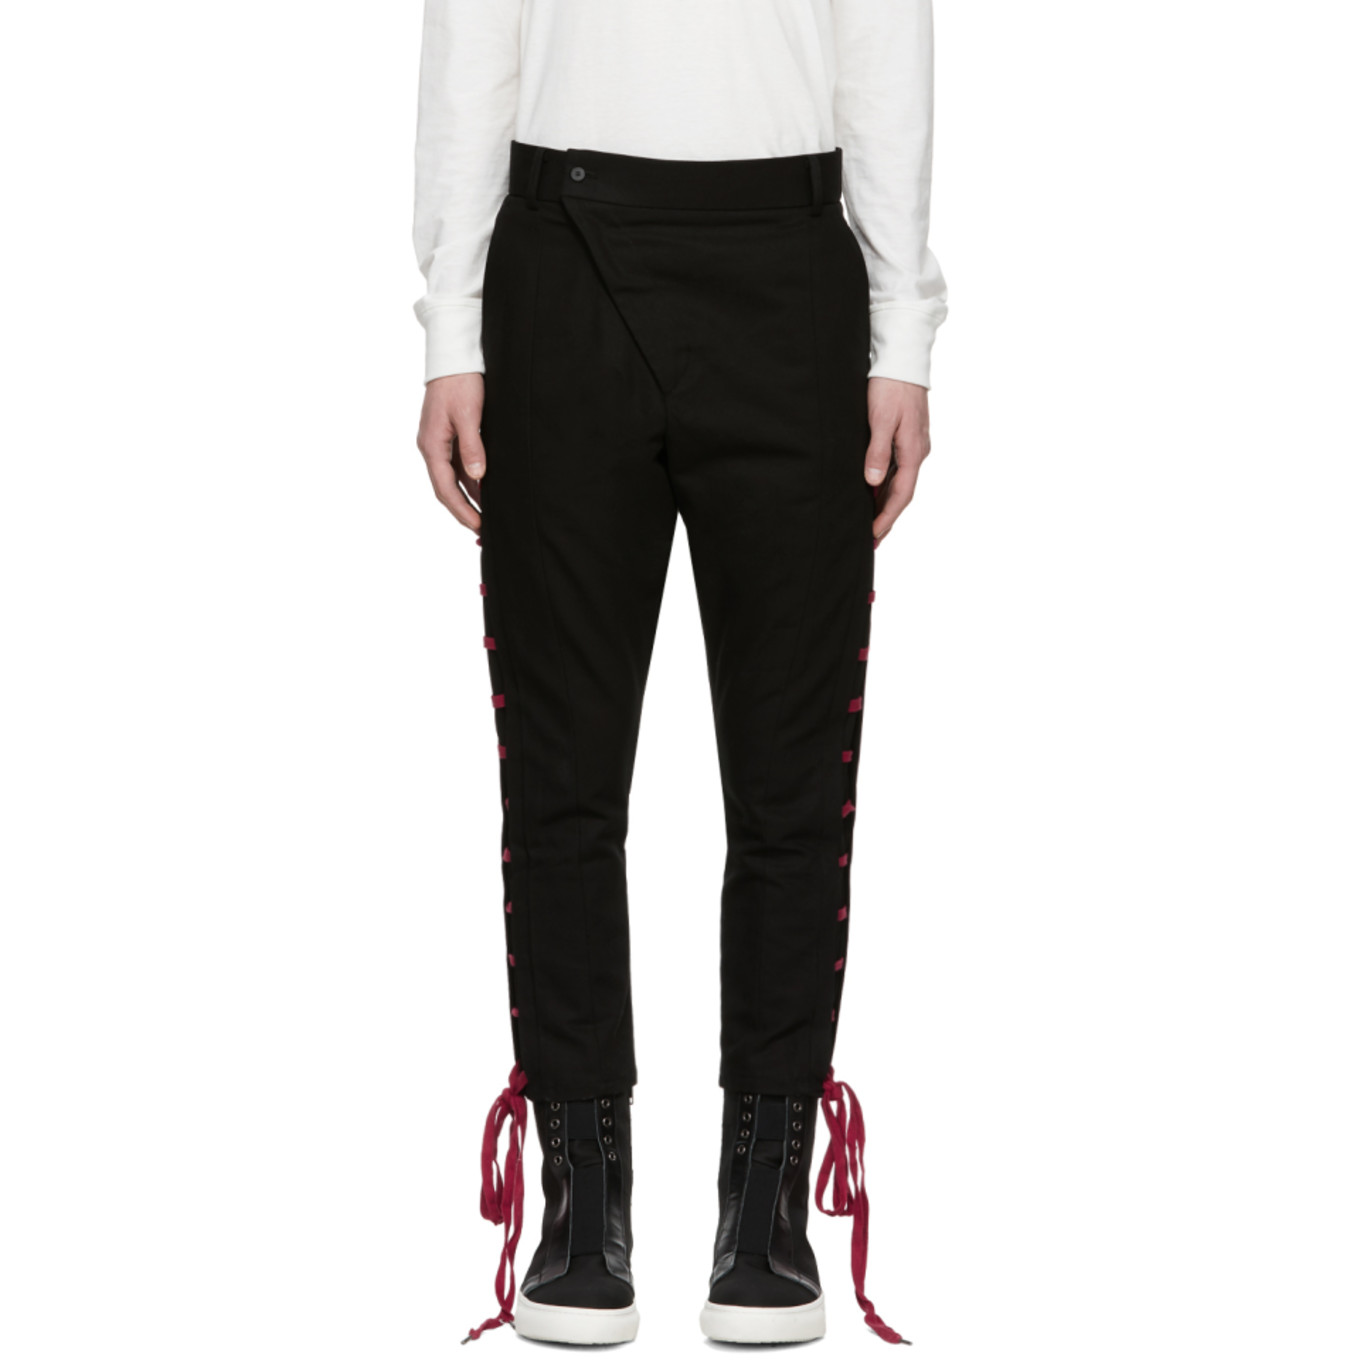 Black & Red Straight String Trousers by D.Gnak By Kang.D